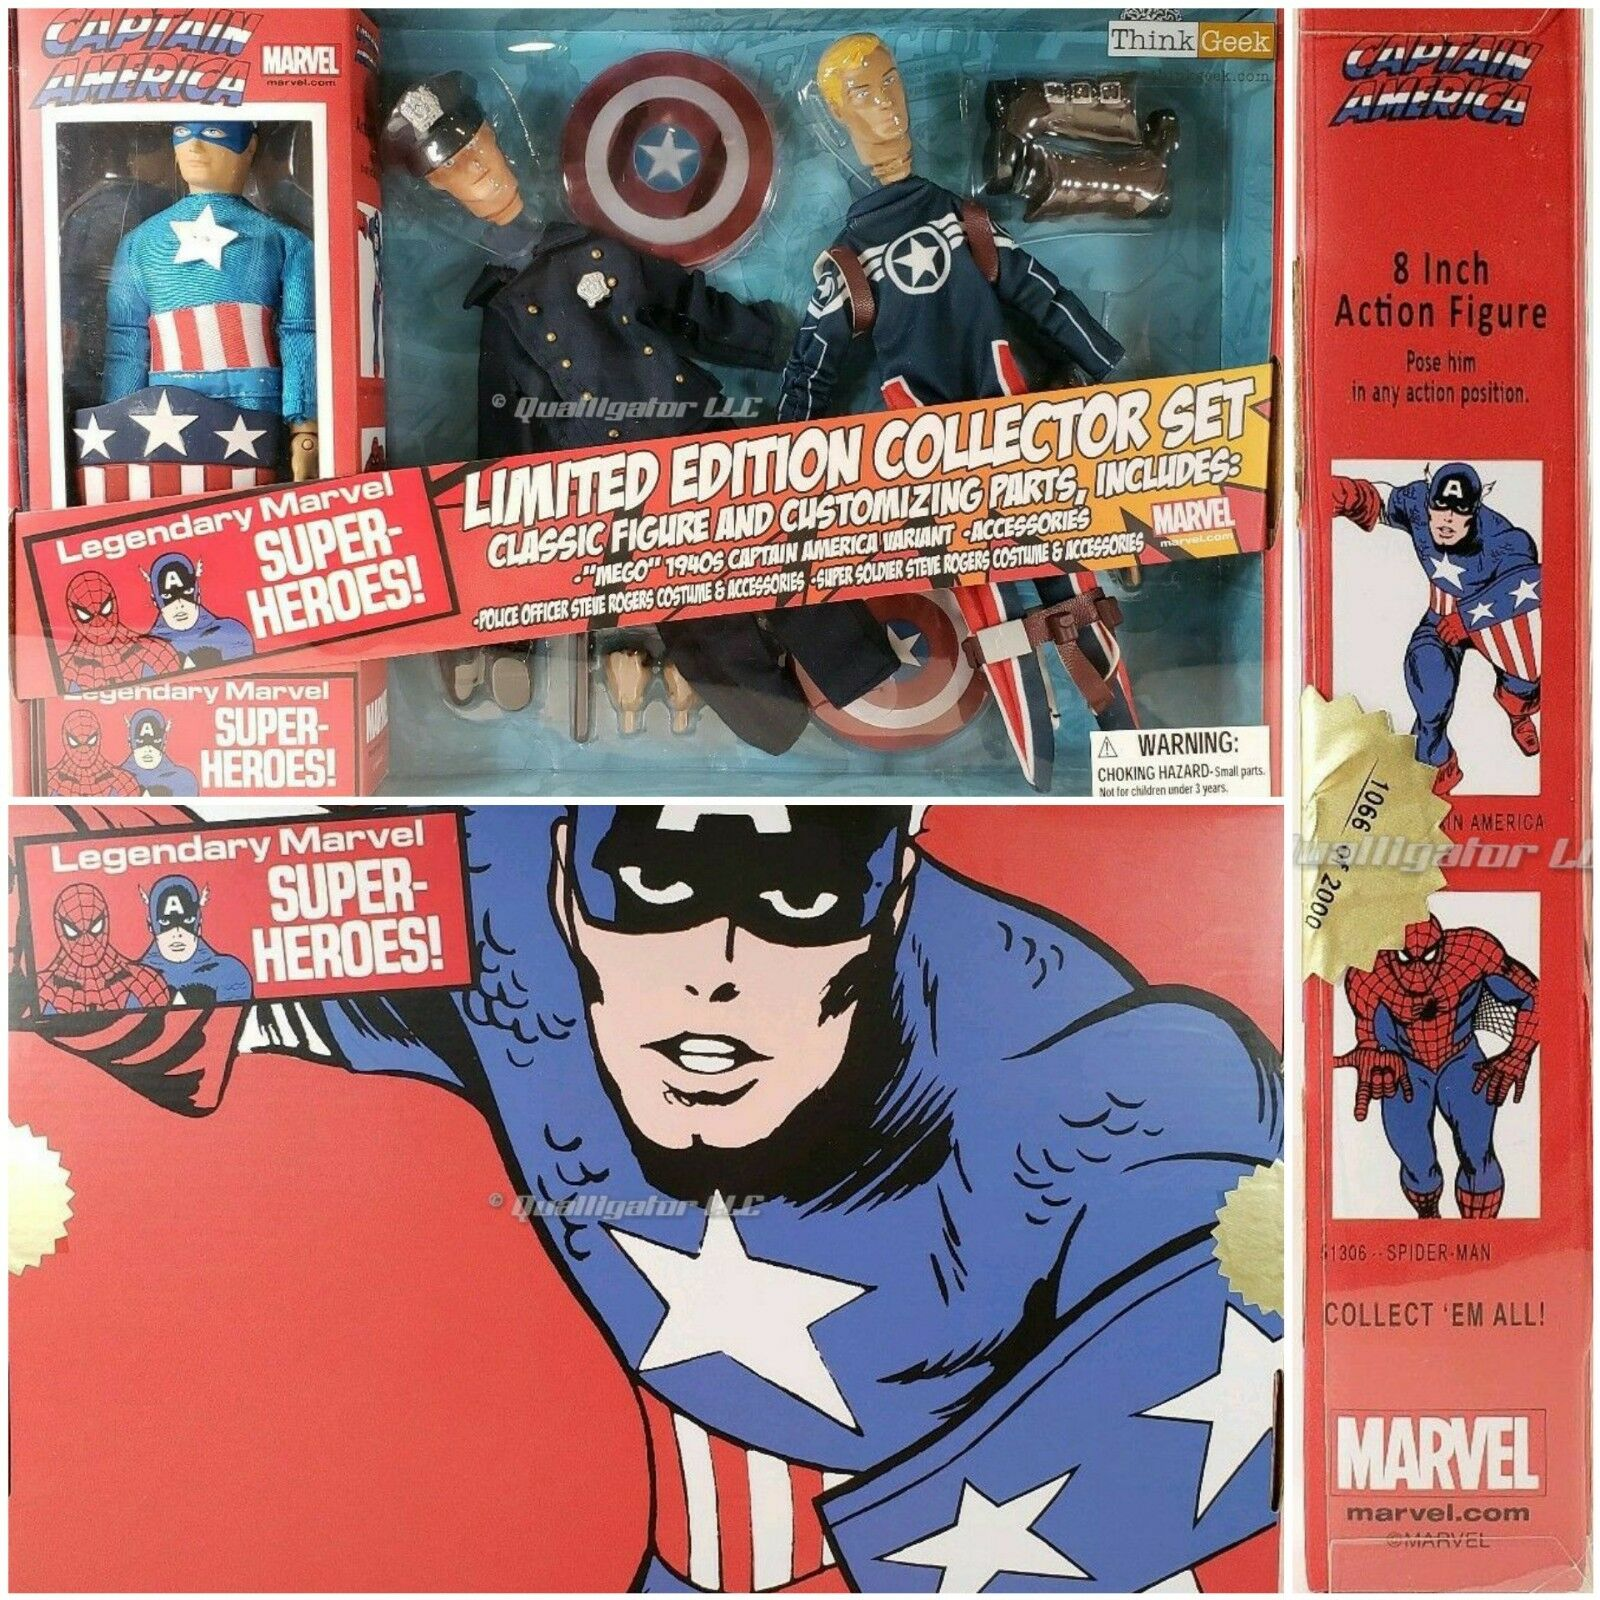 New Captain America édition limitée collector jeu Rétro Marvel 8  3 Figures new in box